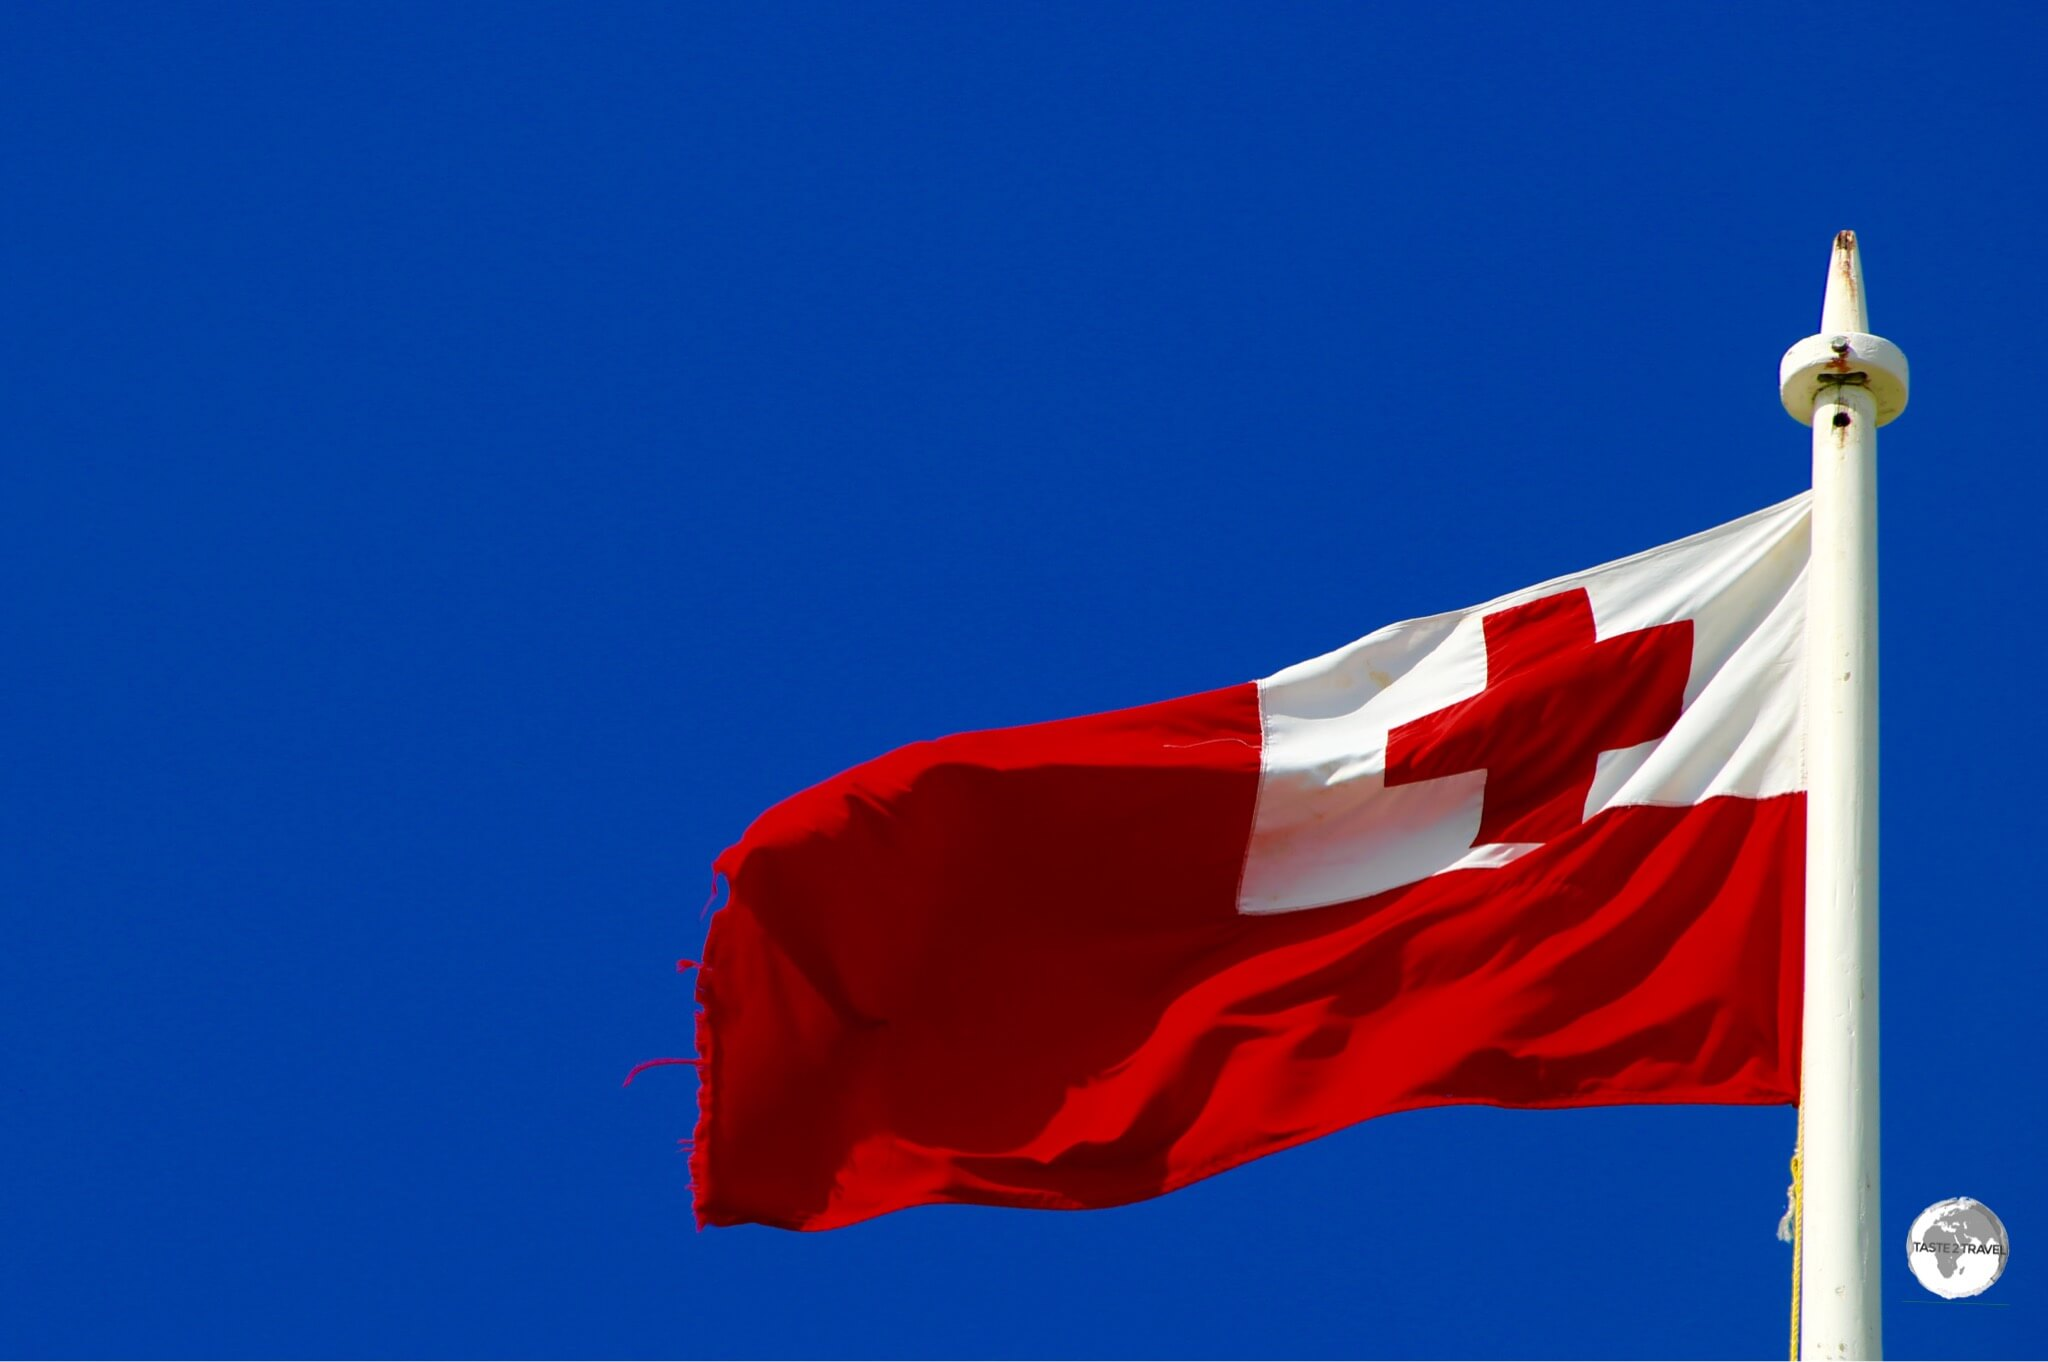 The flag of Tonga - The colours of the flag have religious meaning - The red cross alludes to Christianity while the white represents purity and the red background evokes the sacrifice of the Blood of Christ.